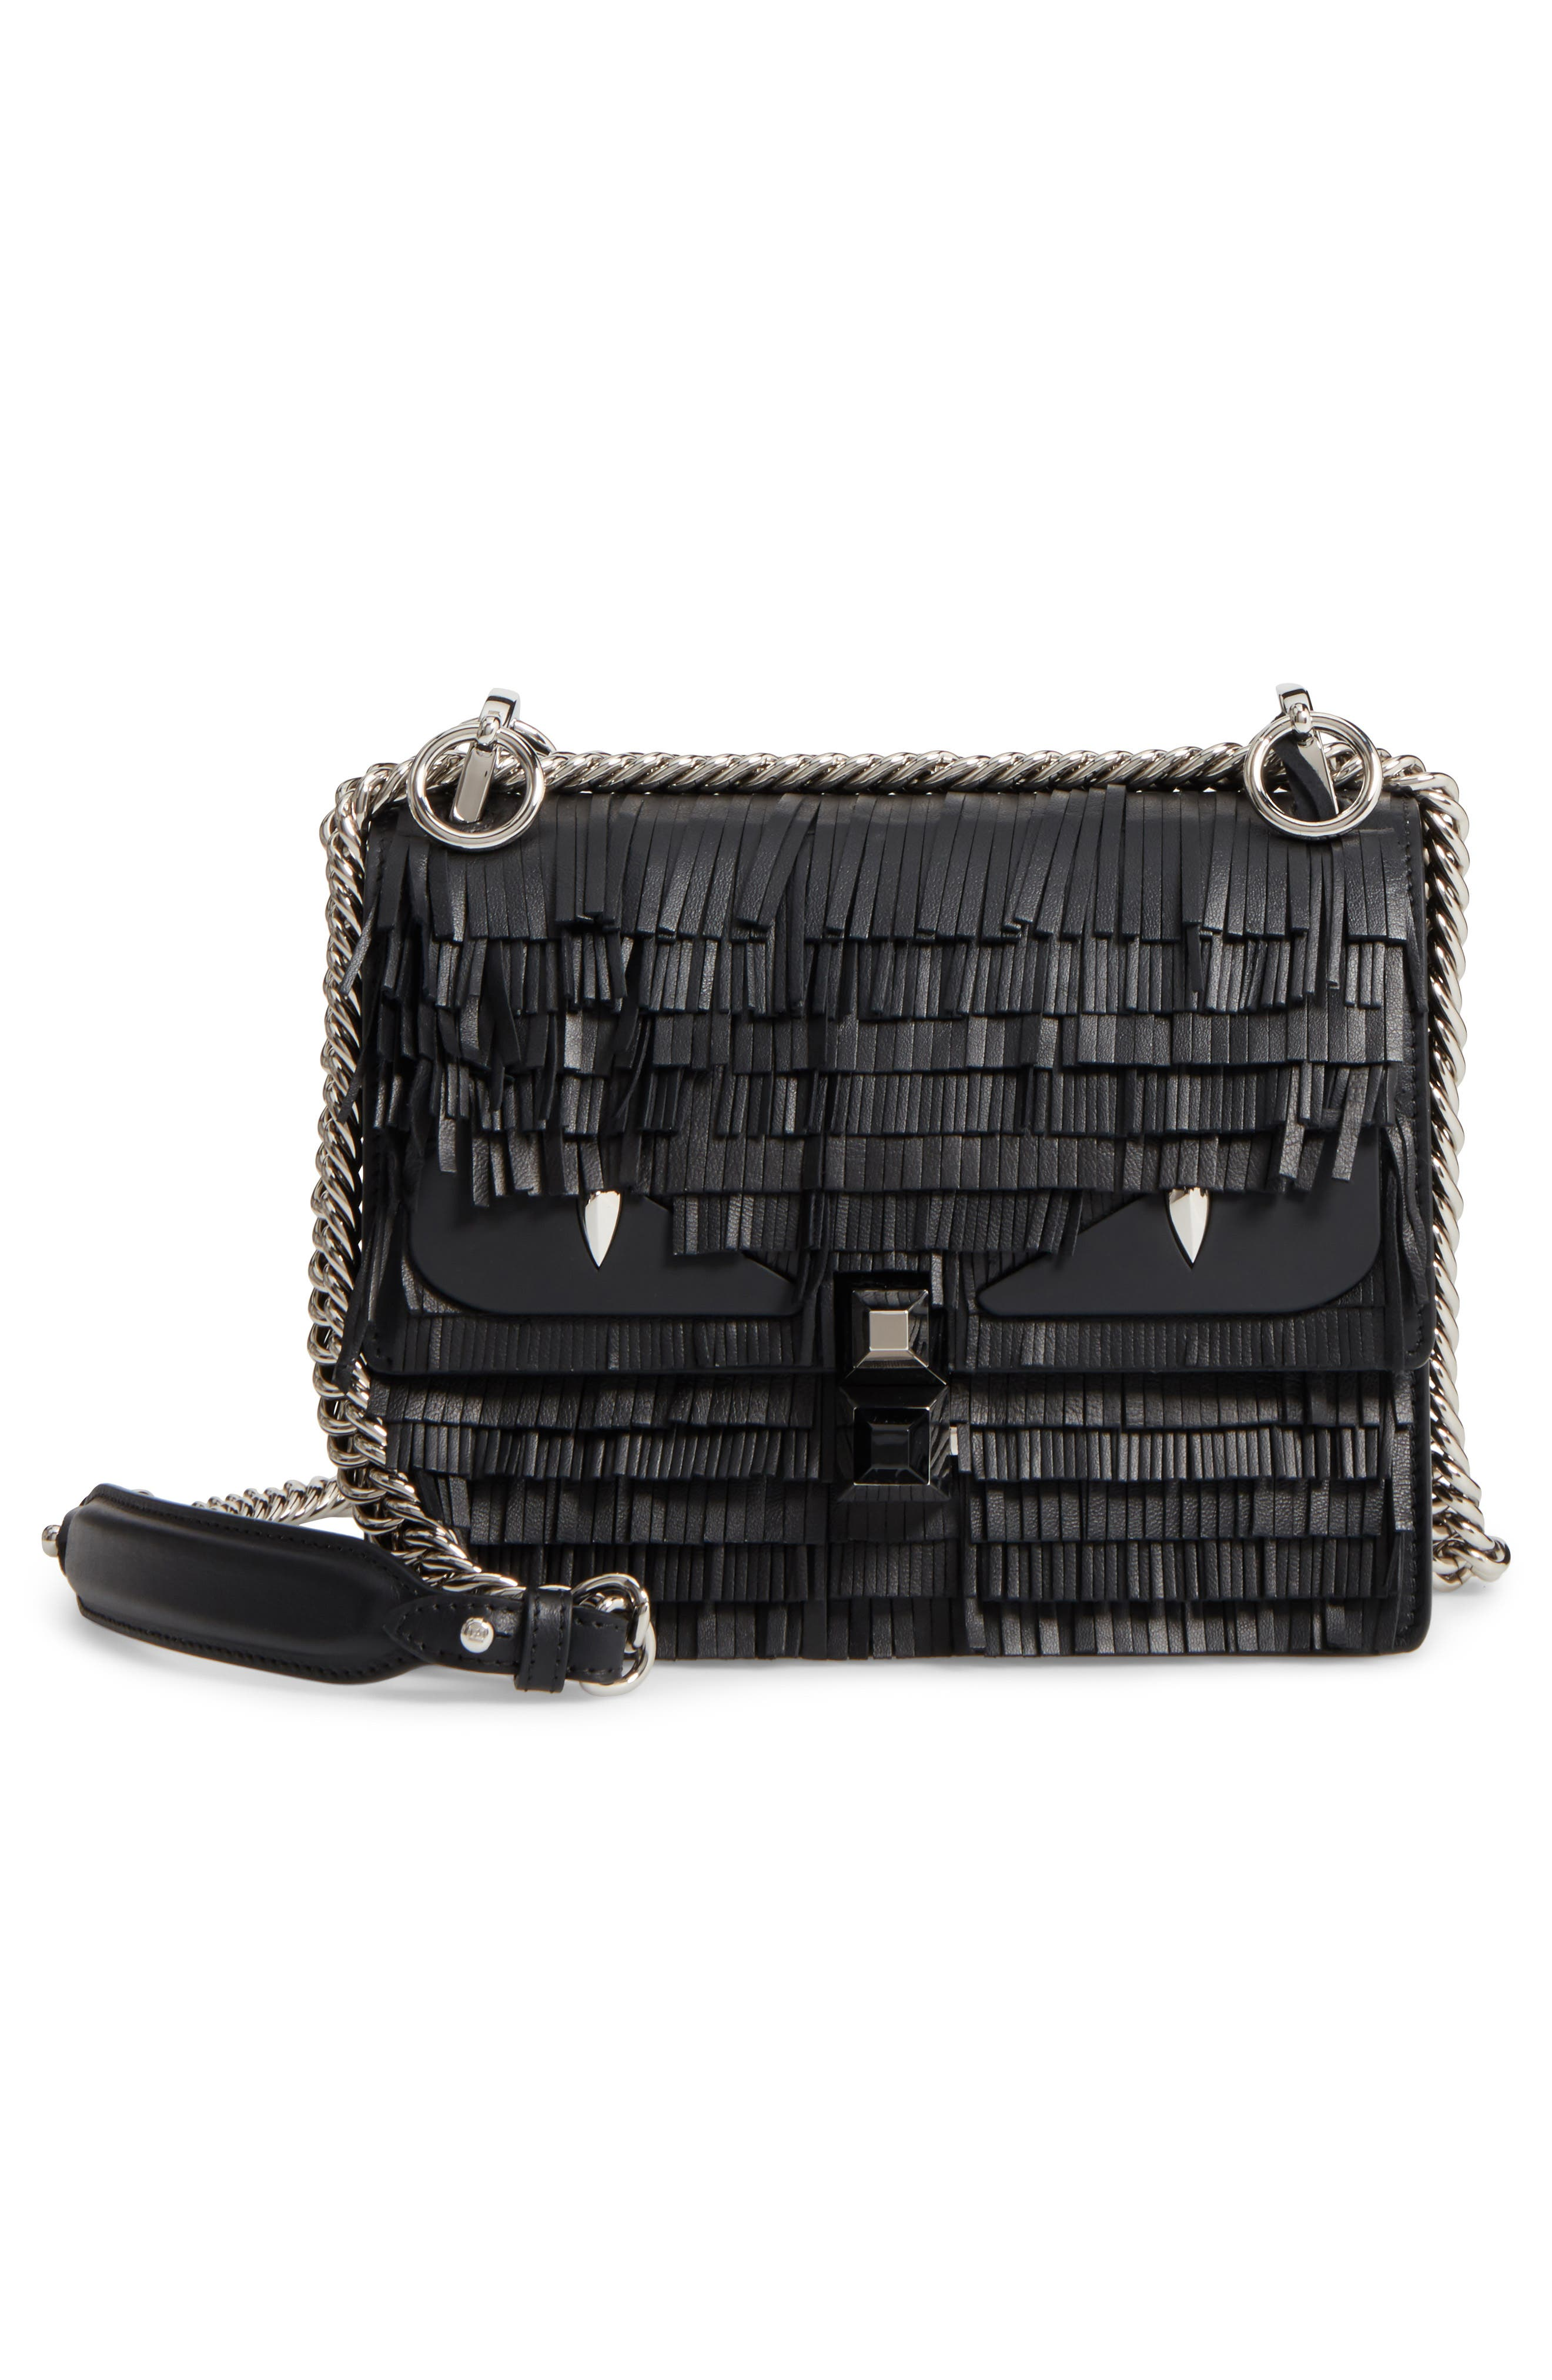 Fendi Small Kan I Fringe Monster Calfskin Shoulder Bag